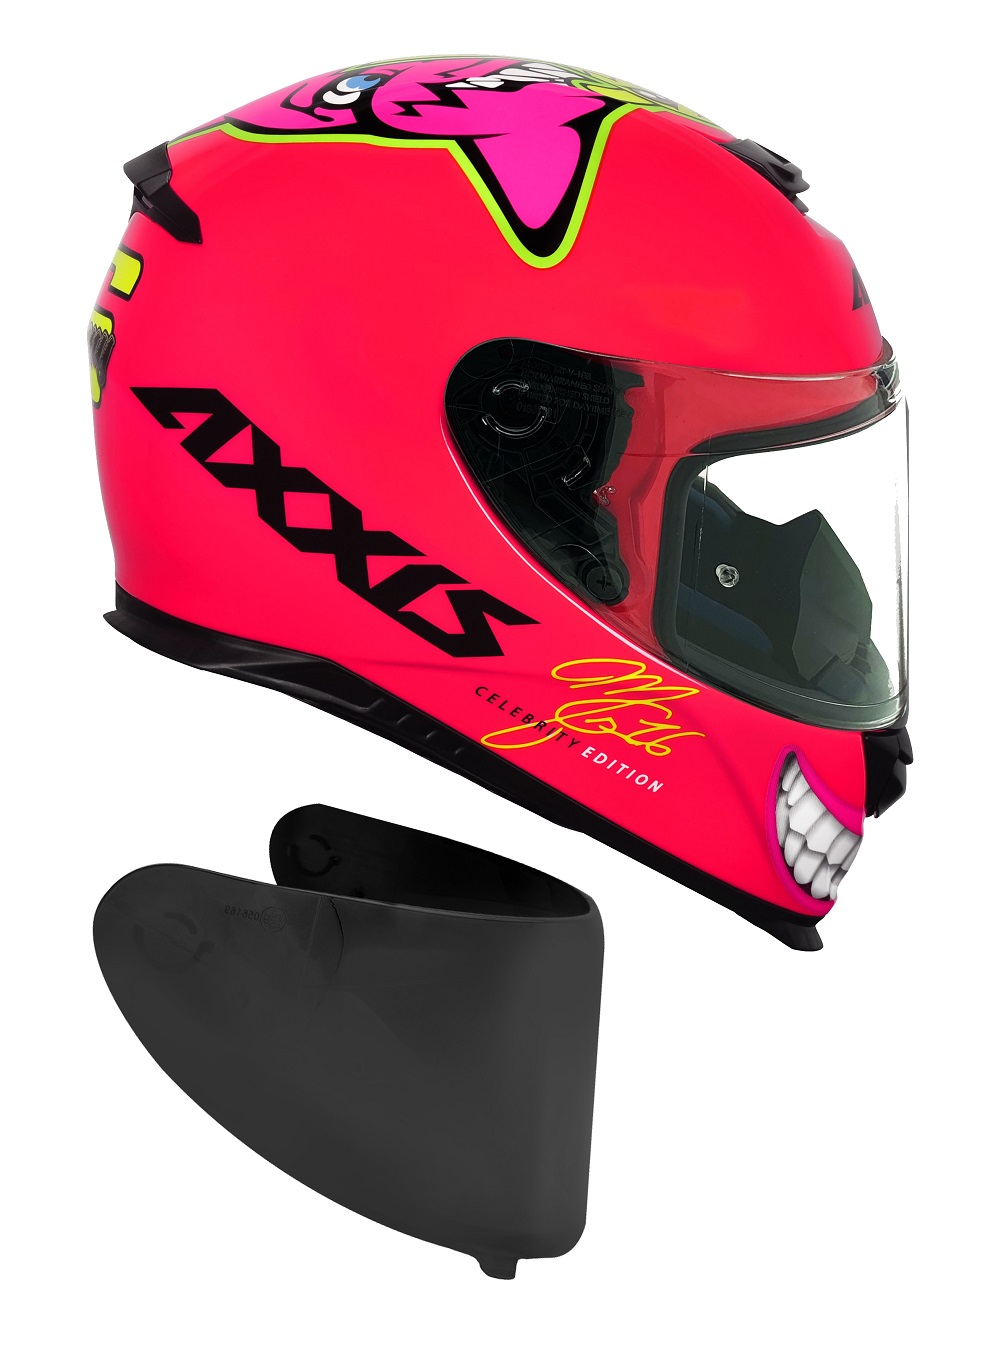 Capacete Axxis Mg16 Celebrity Edition Marianny Gloss Pink Com Viseira Fumê